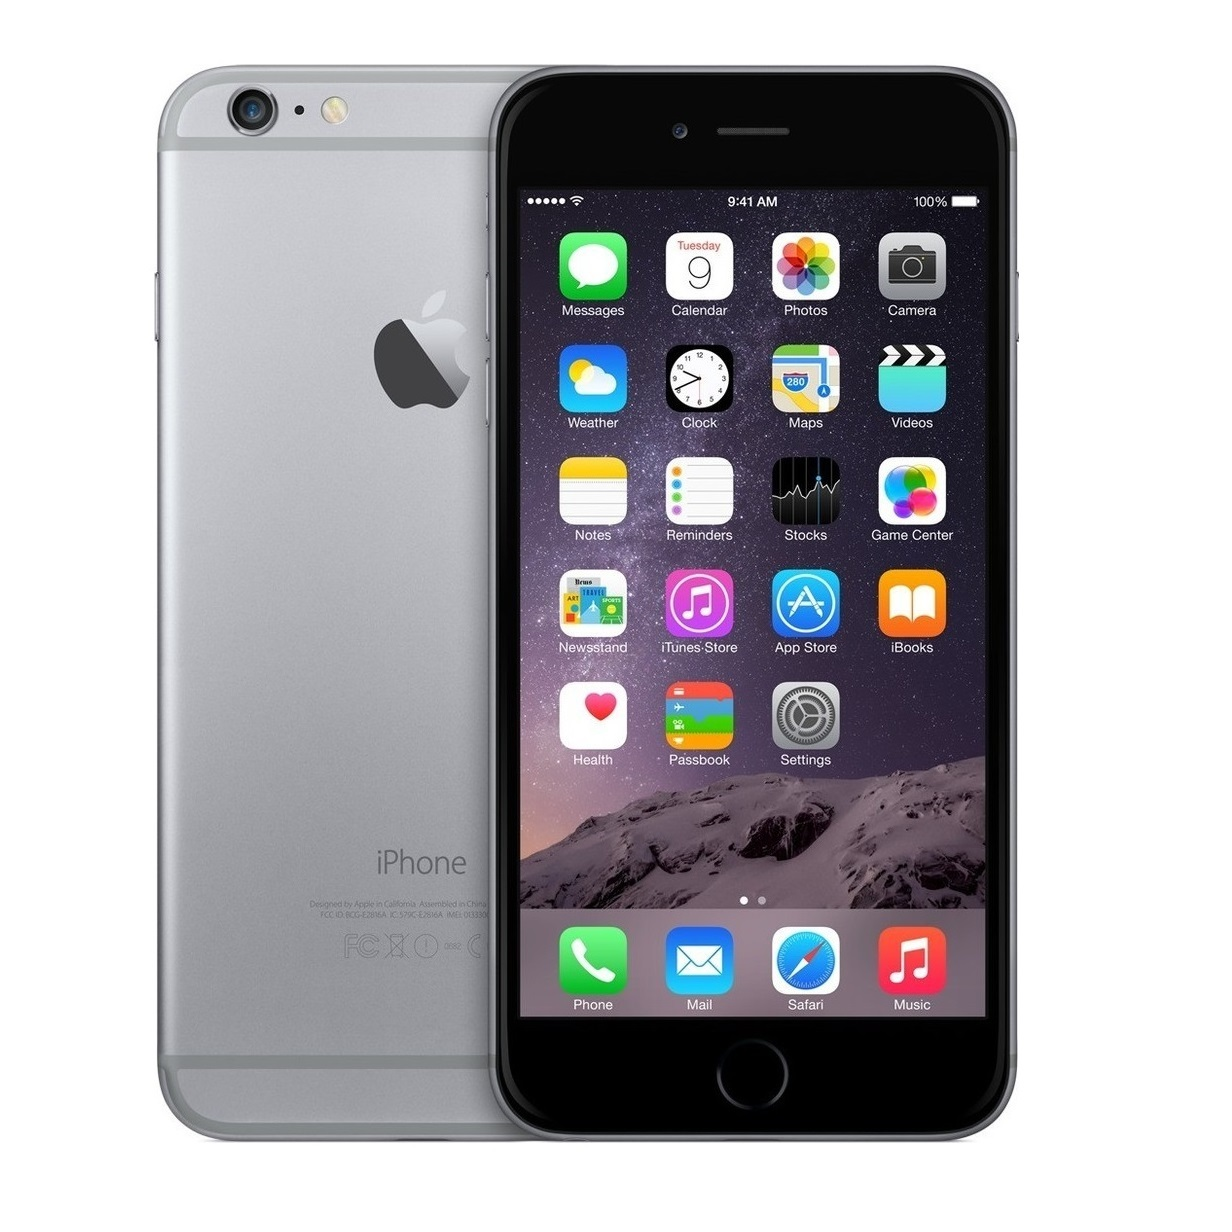 apple iphone 6 plus 128gb smartphone verizon no contract brand new ebay. Black Bedroom Furniture Sets. Home Design Ideas